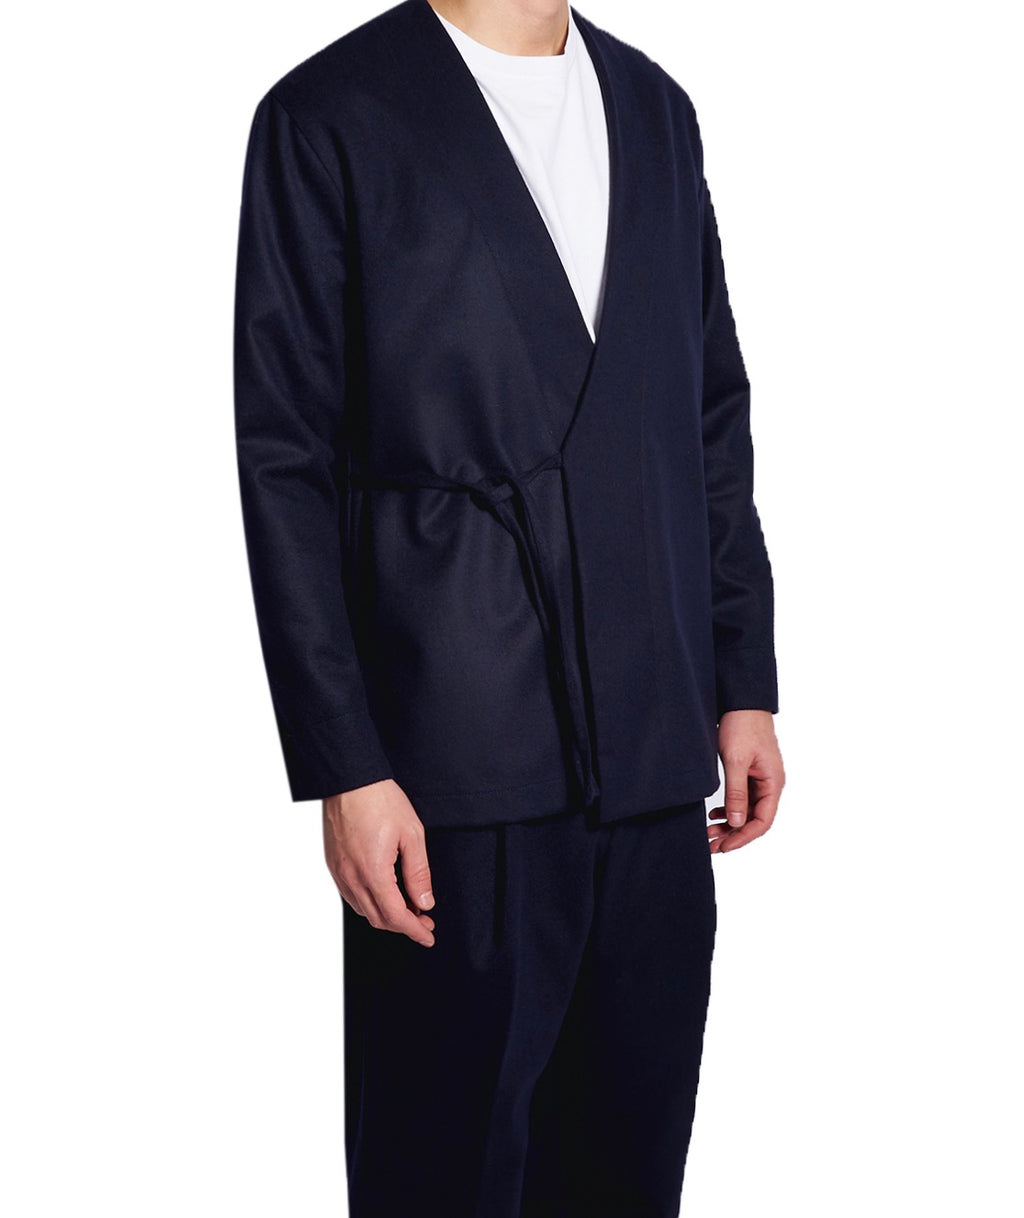 MEN'S KIMO-SHIRT DARK BLUE